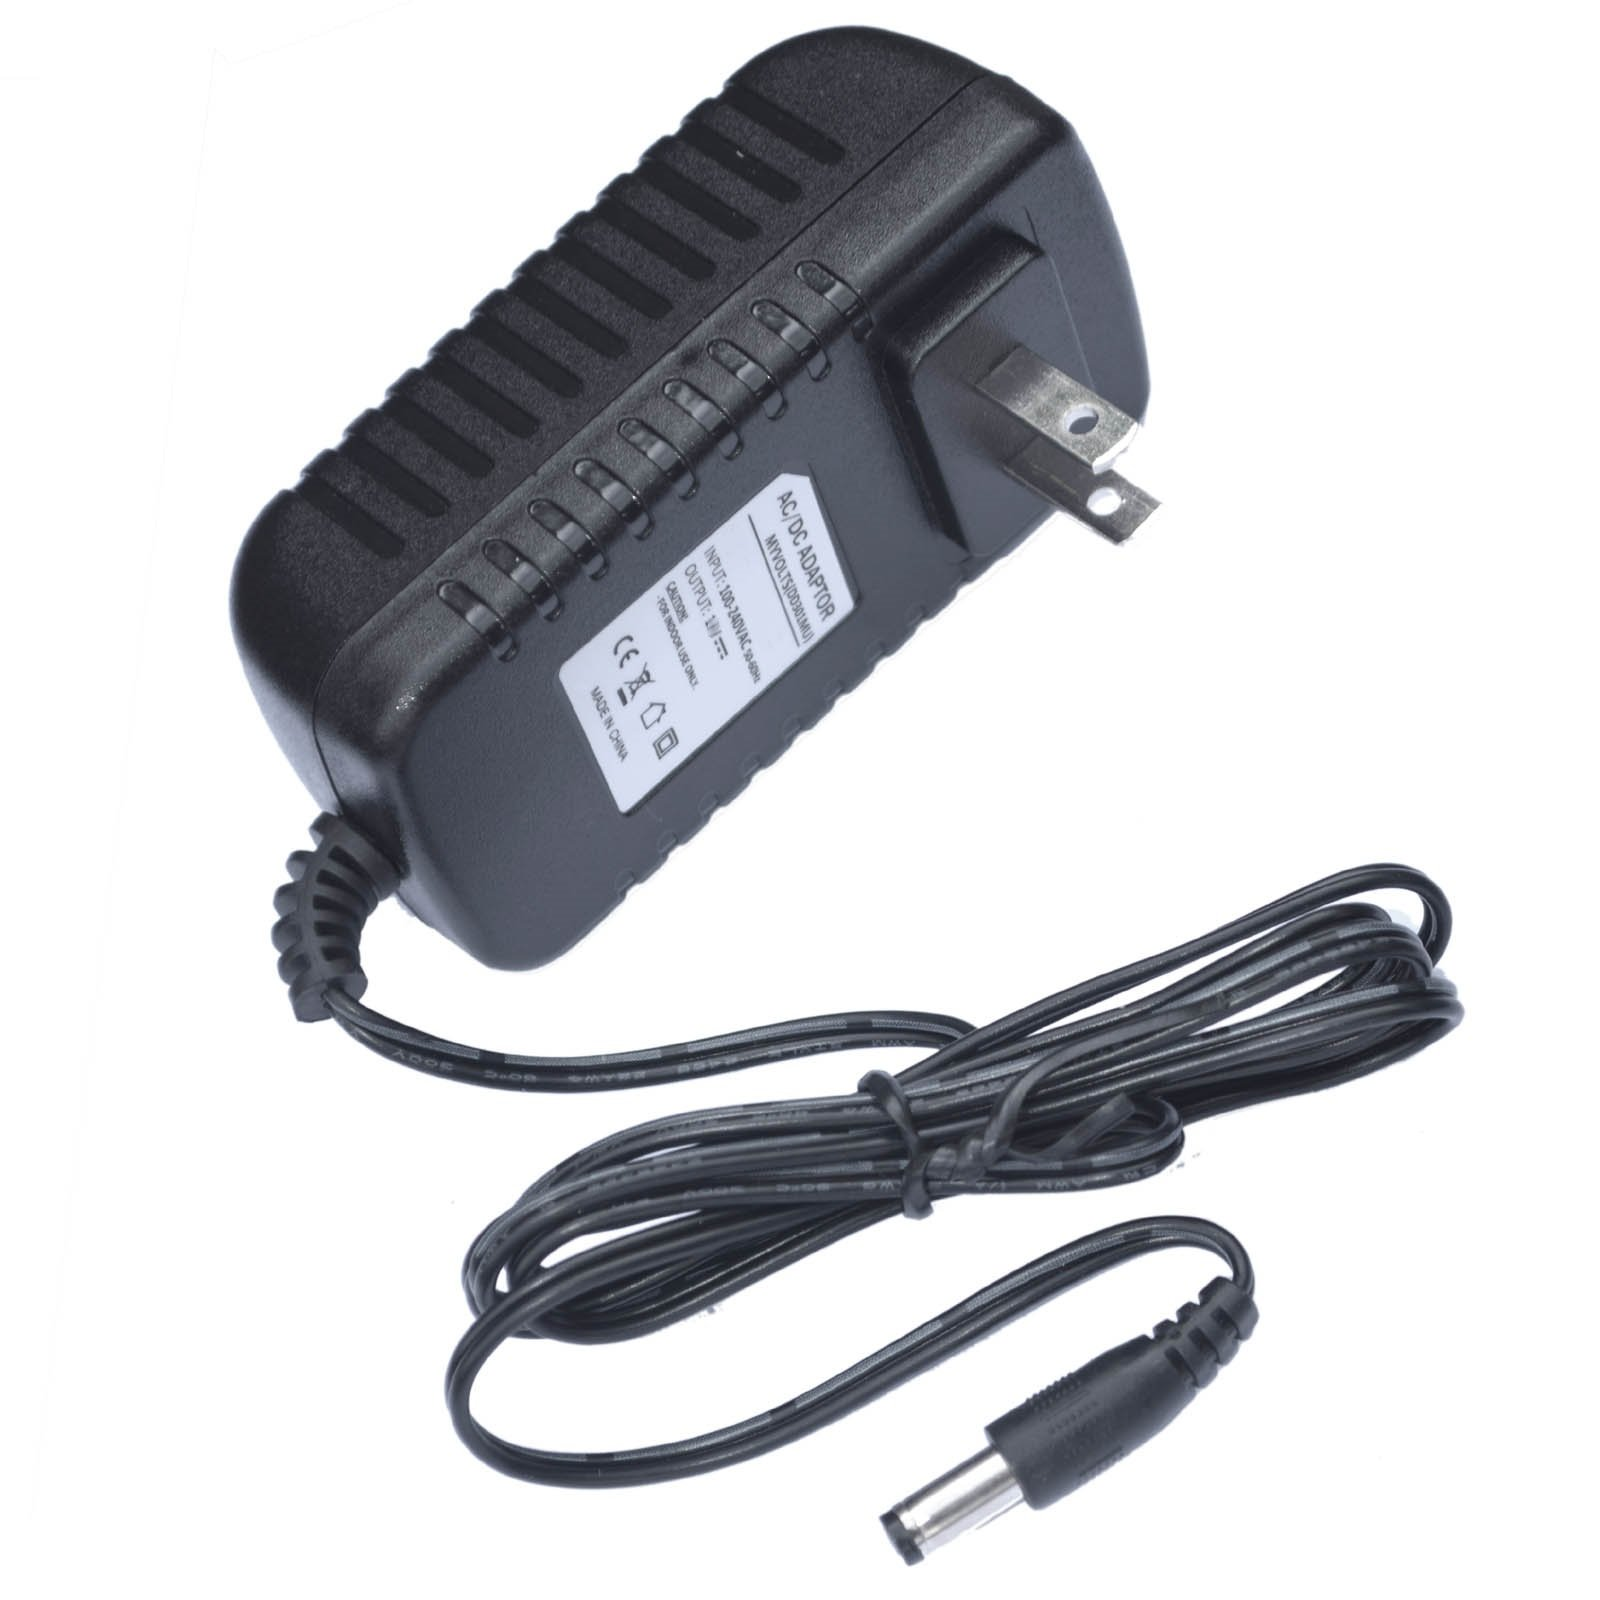 9V Boss DR-670 Drum machine replacement power supply adaptor - US plug